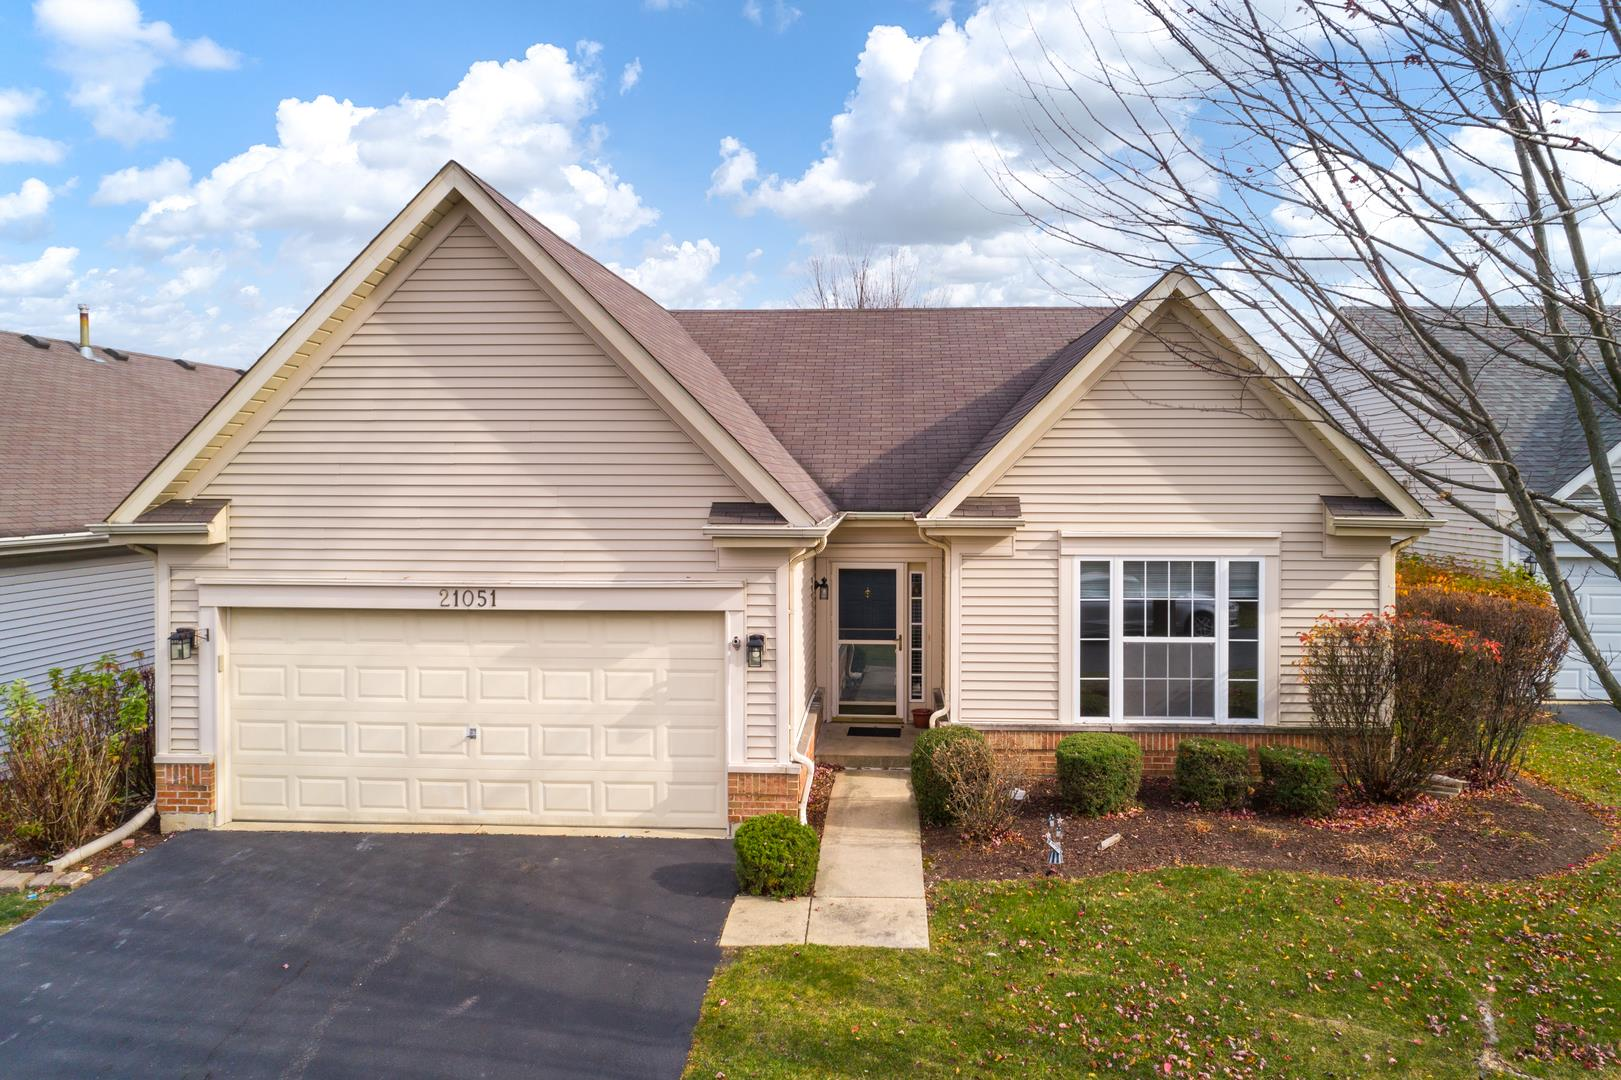 21051 W Aspen Lane, Plainfield, IL 60544 - MLS#: 10960197